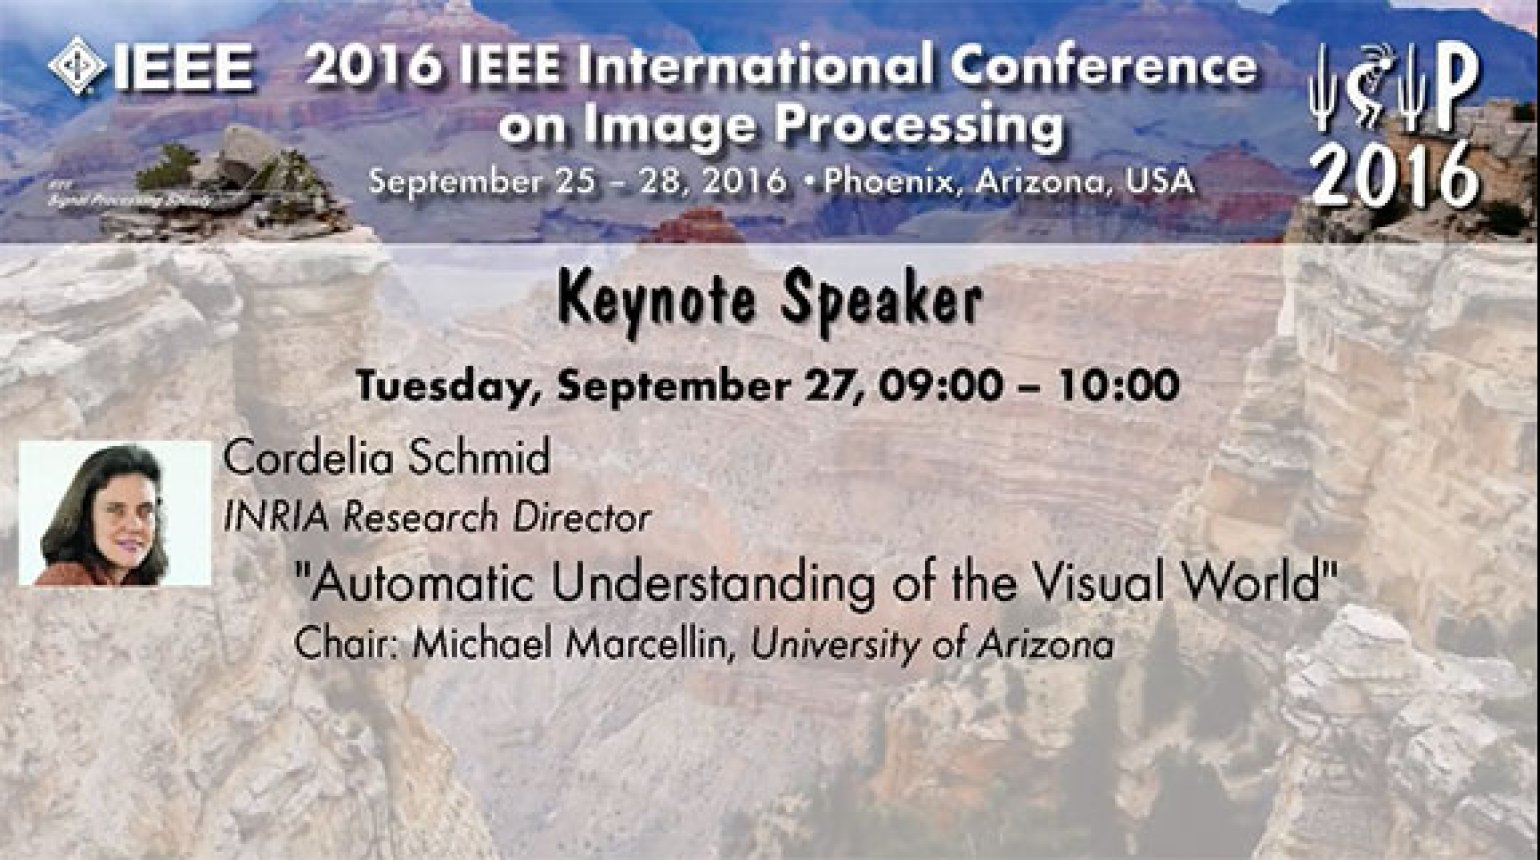 Plenary: Automatic Understanding of the Visual World